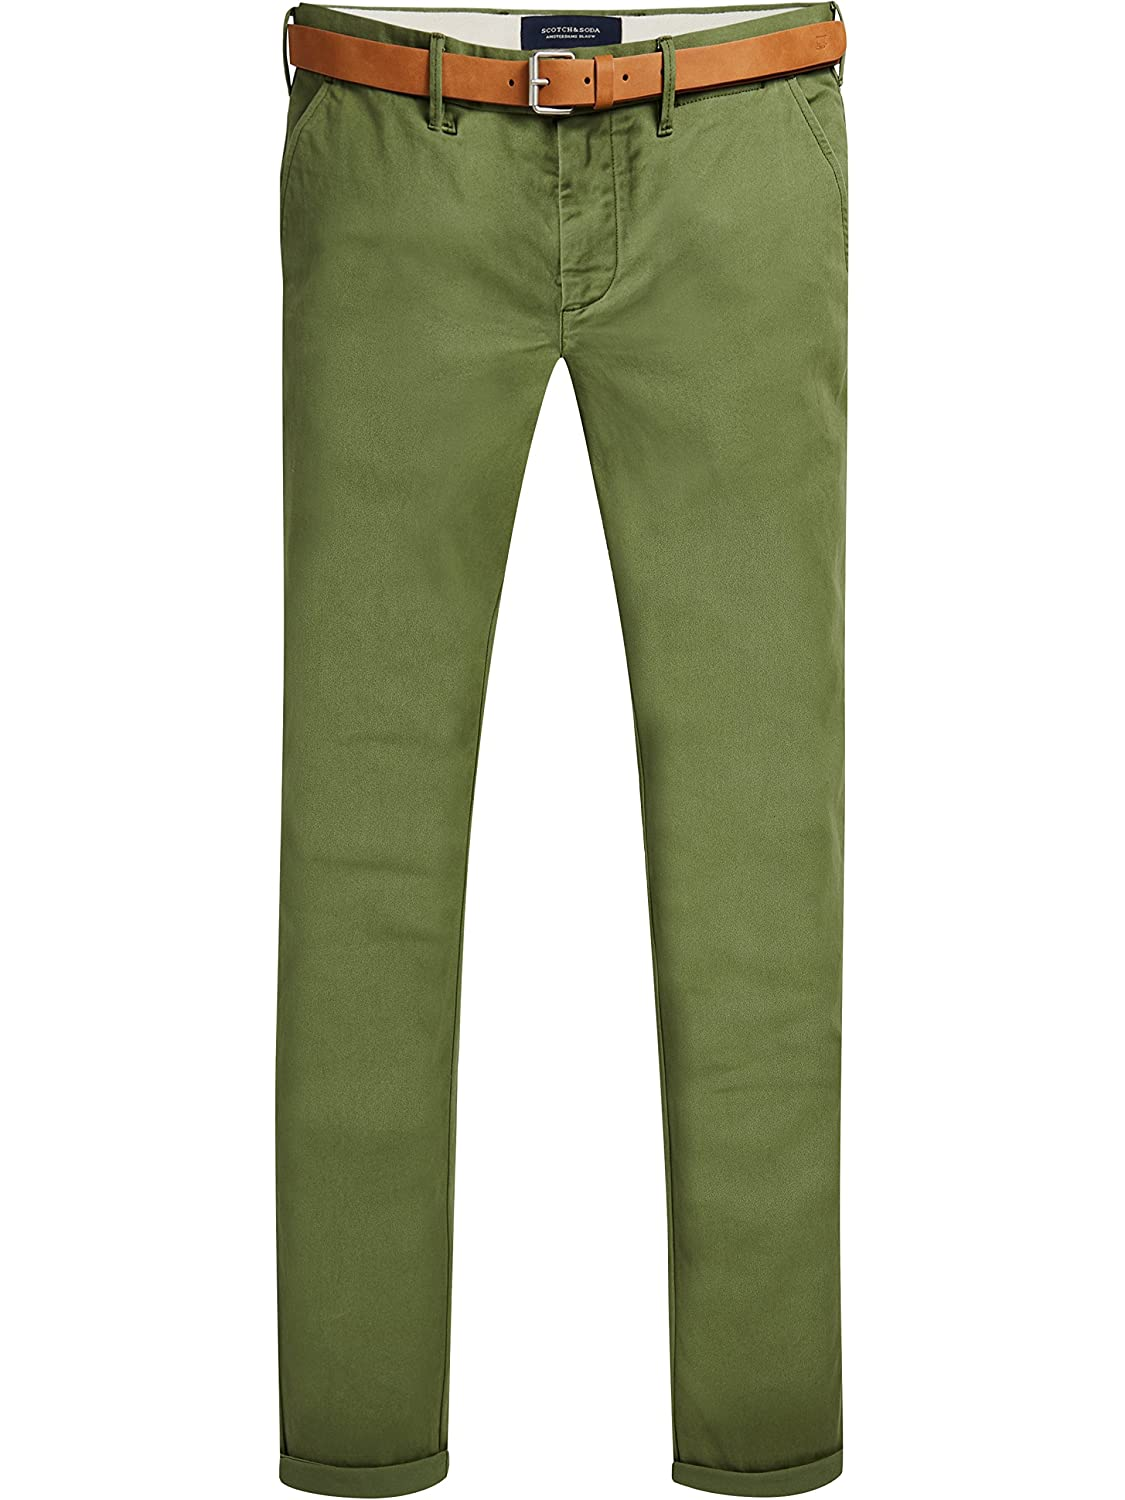 TALLA 29W / 32L. Scotch & Soda Stuart In Peached Twill with Belt, Pantalones para Hombre